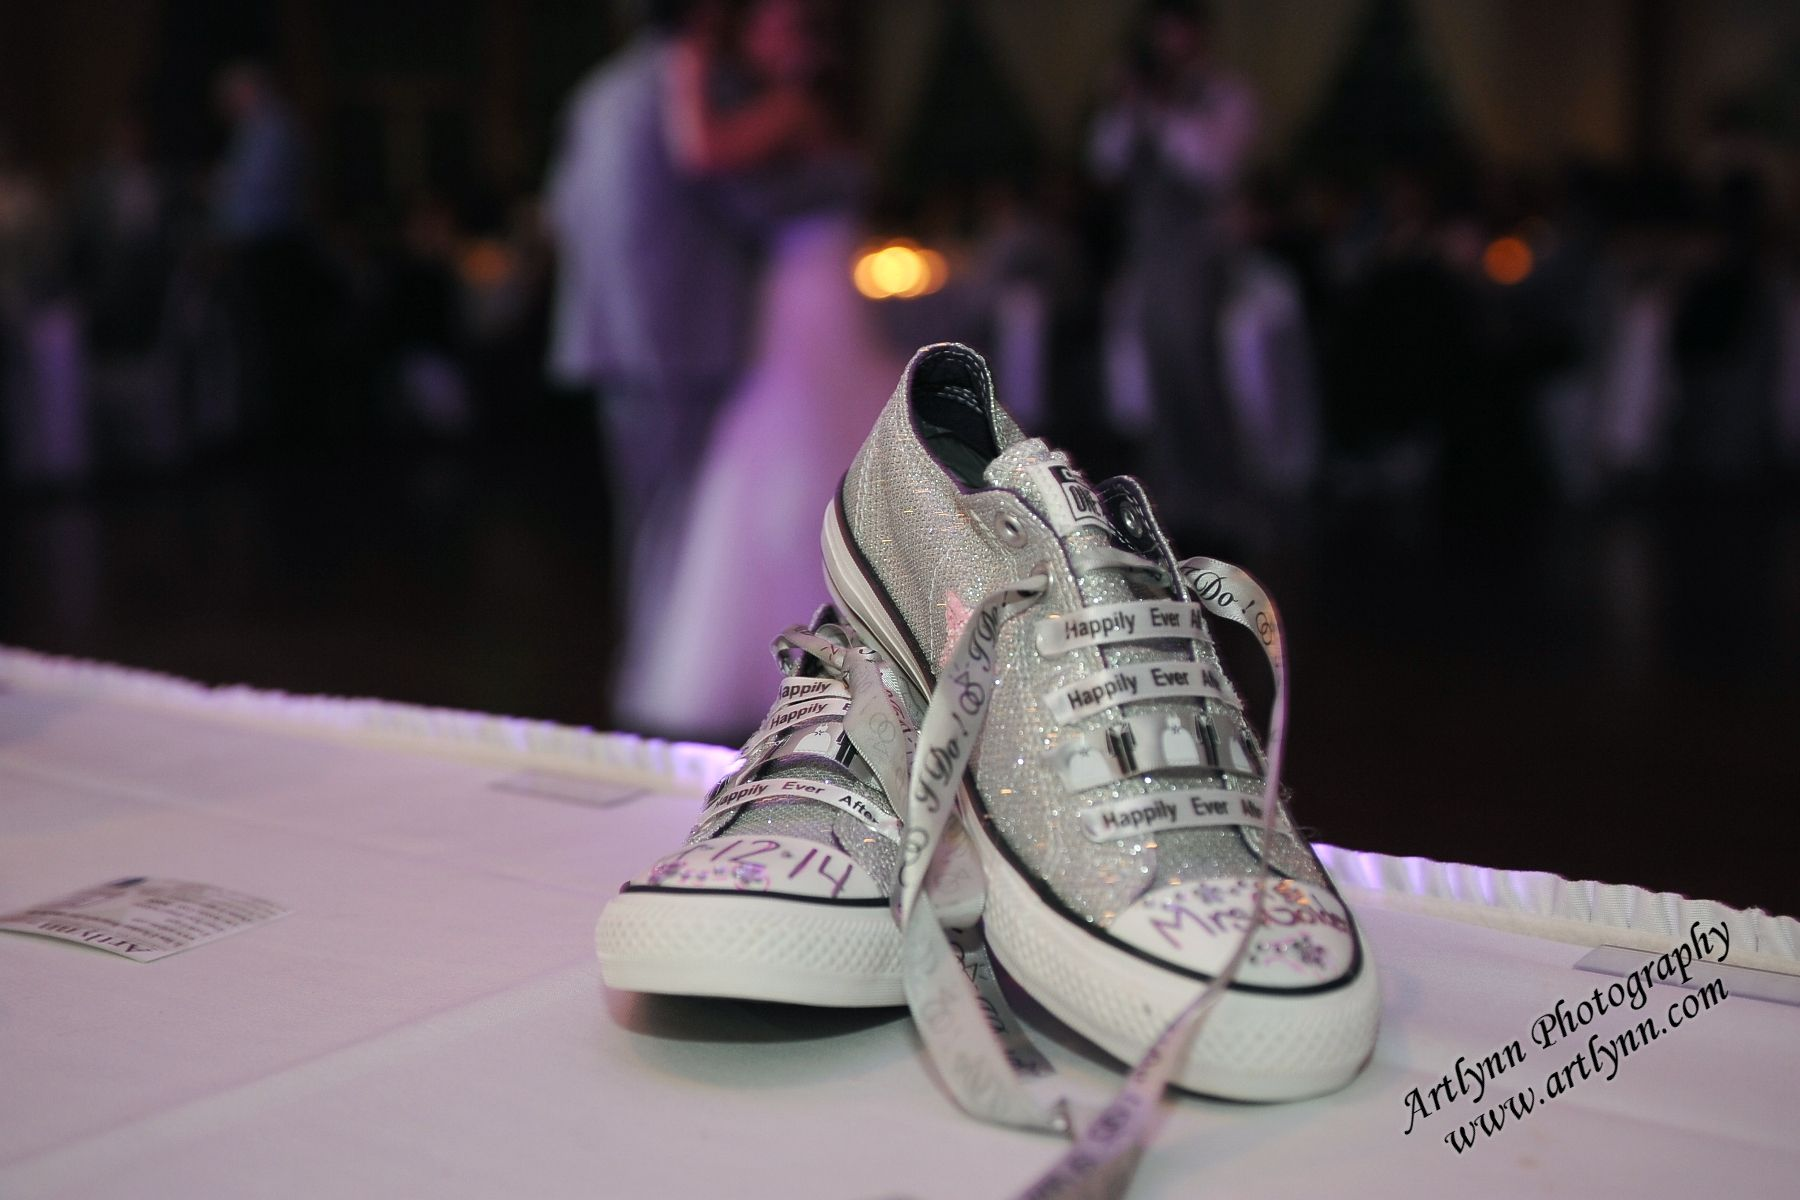 Customize your wedding with us! Large wedding venues